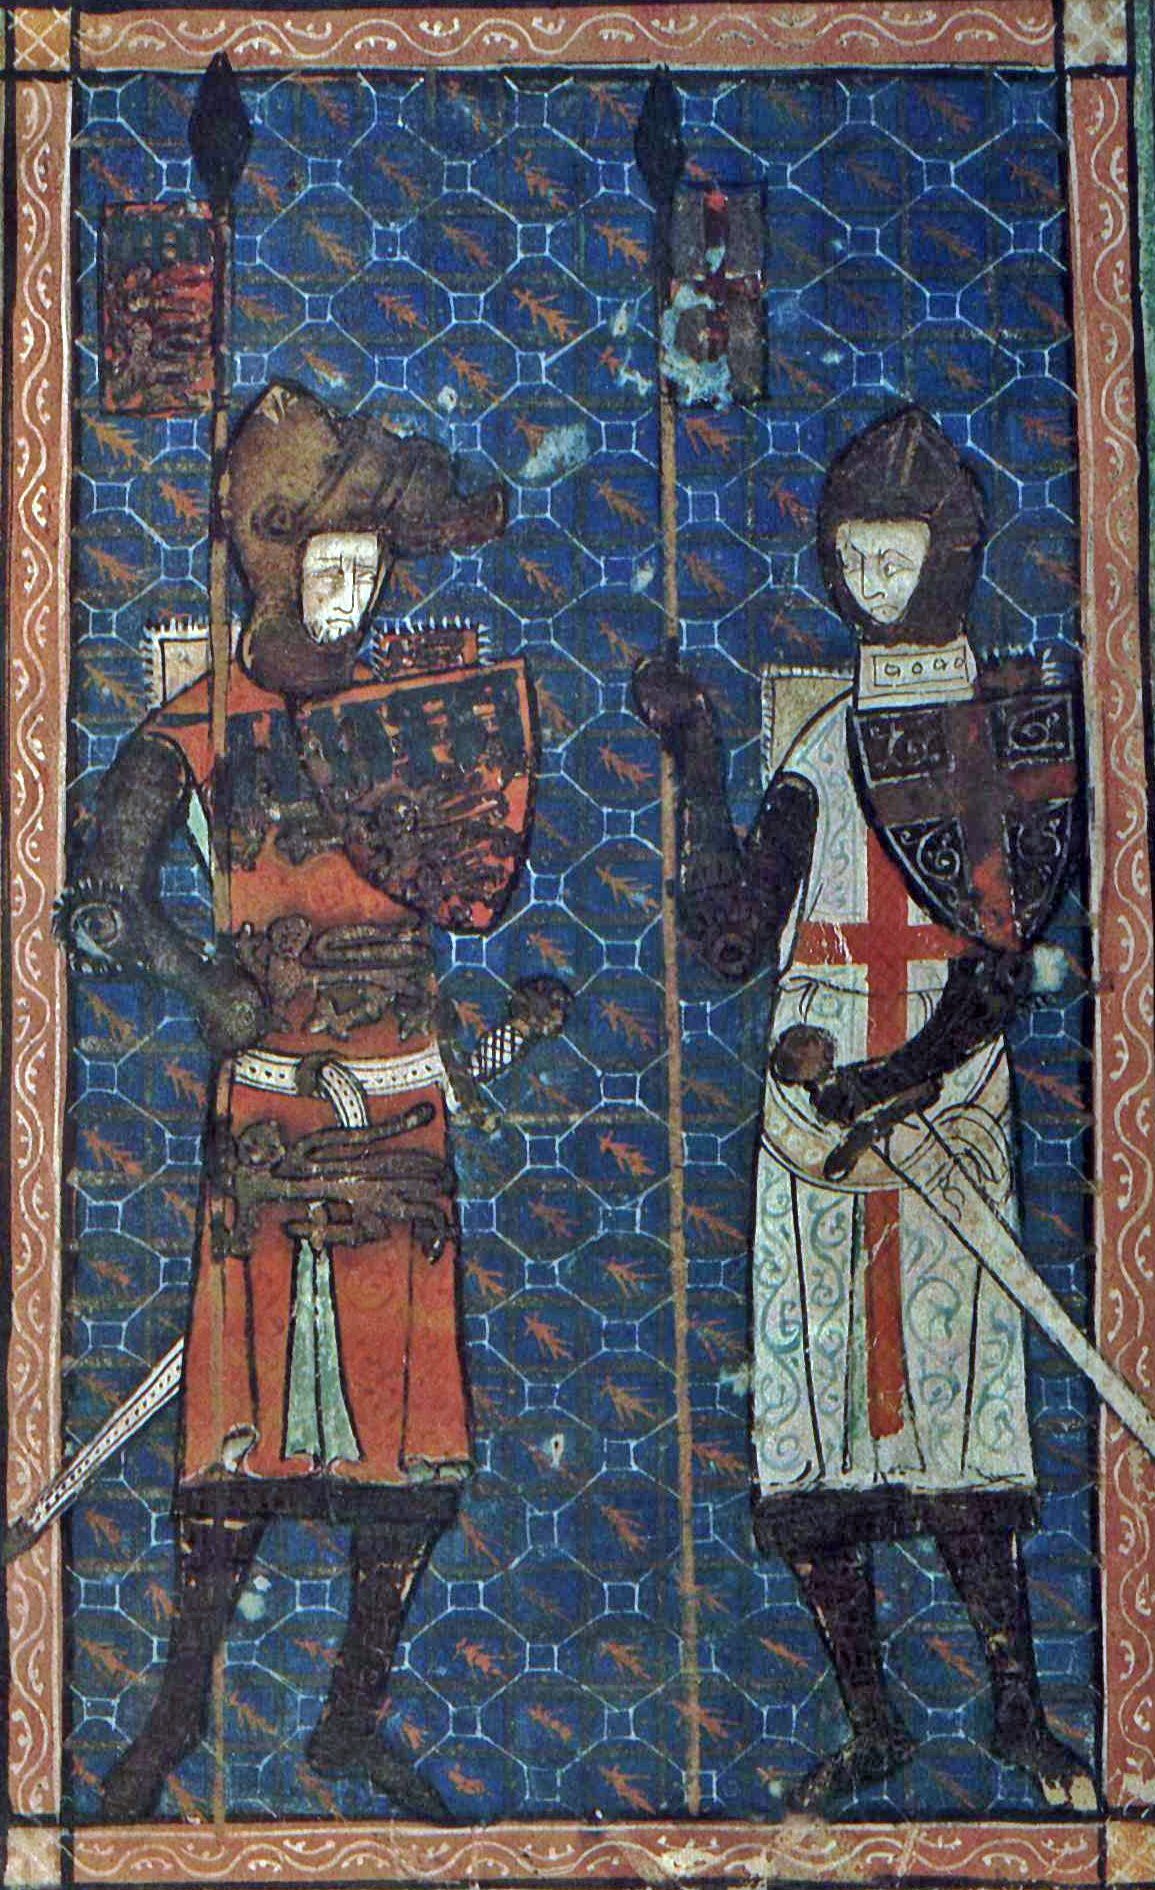 Edward Crouchback and St. George. IN: Bodleian Douce 231, Fol 1 r. Source: Wikipedia